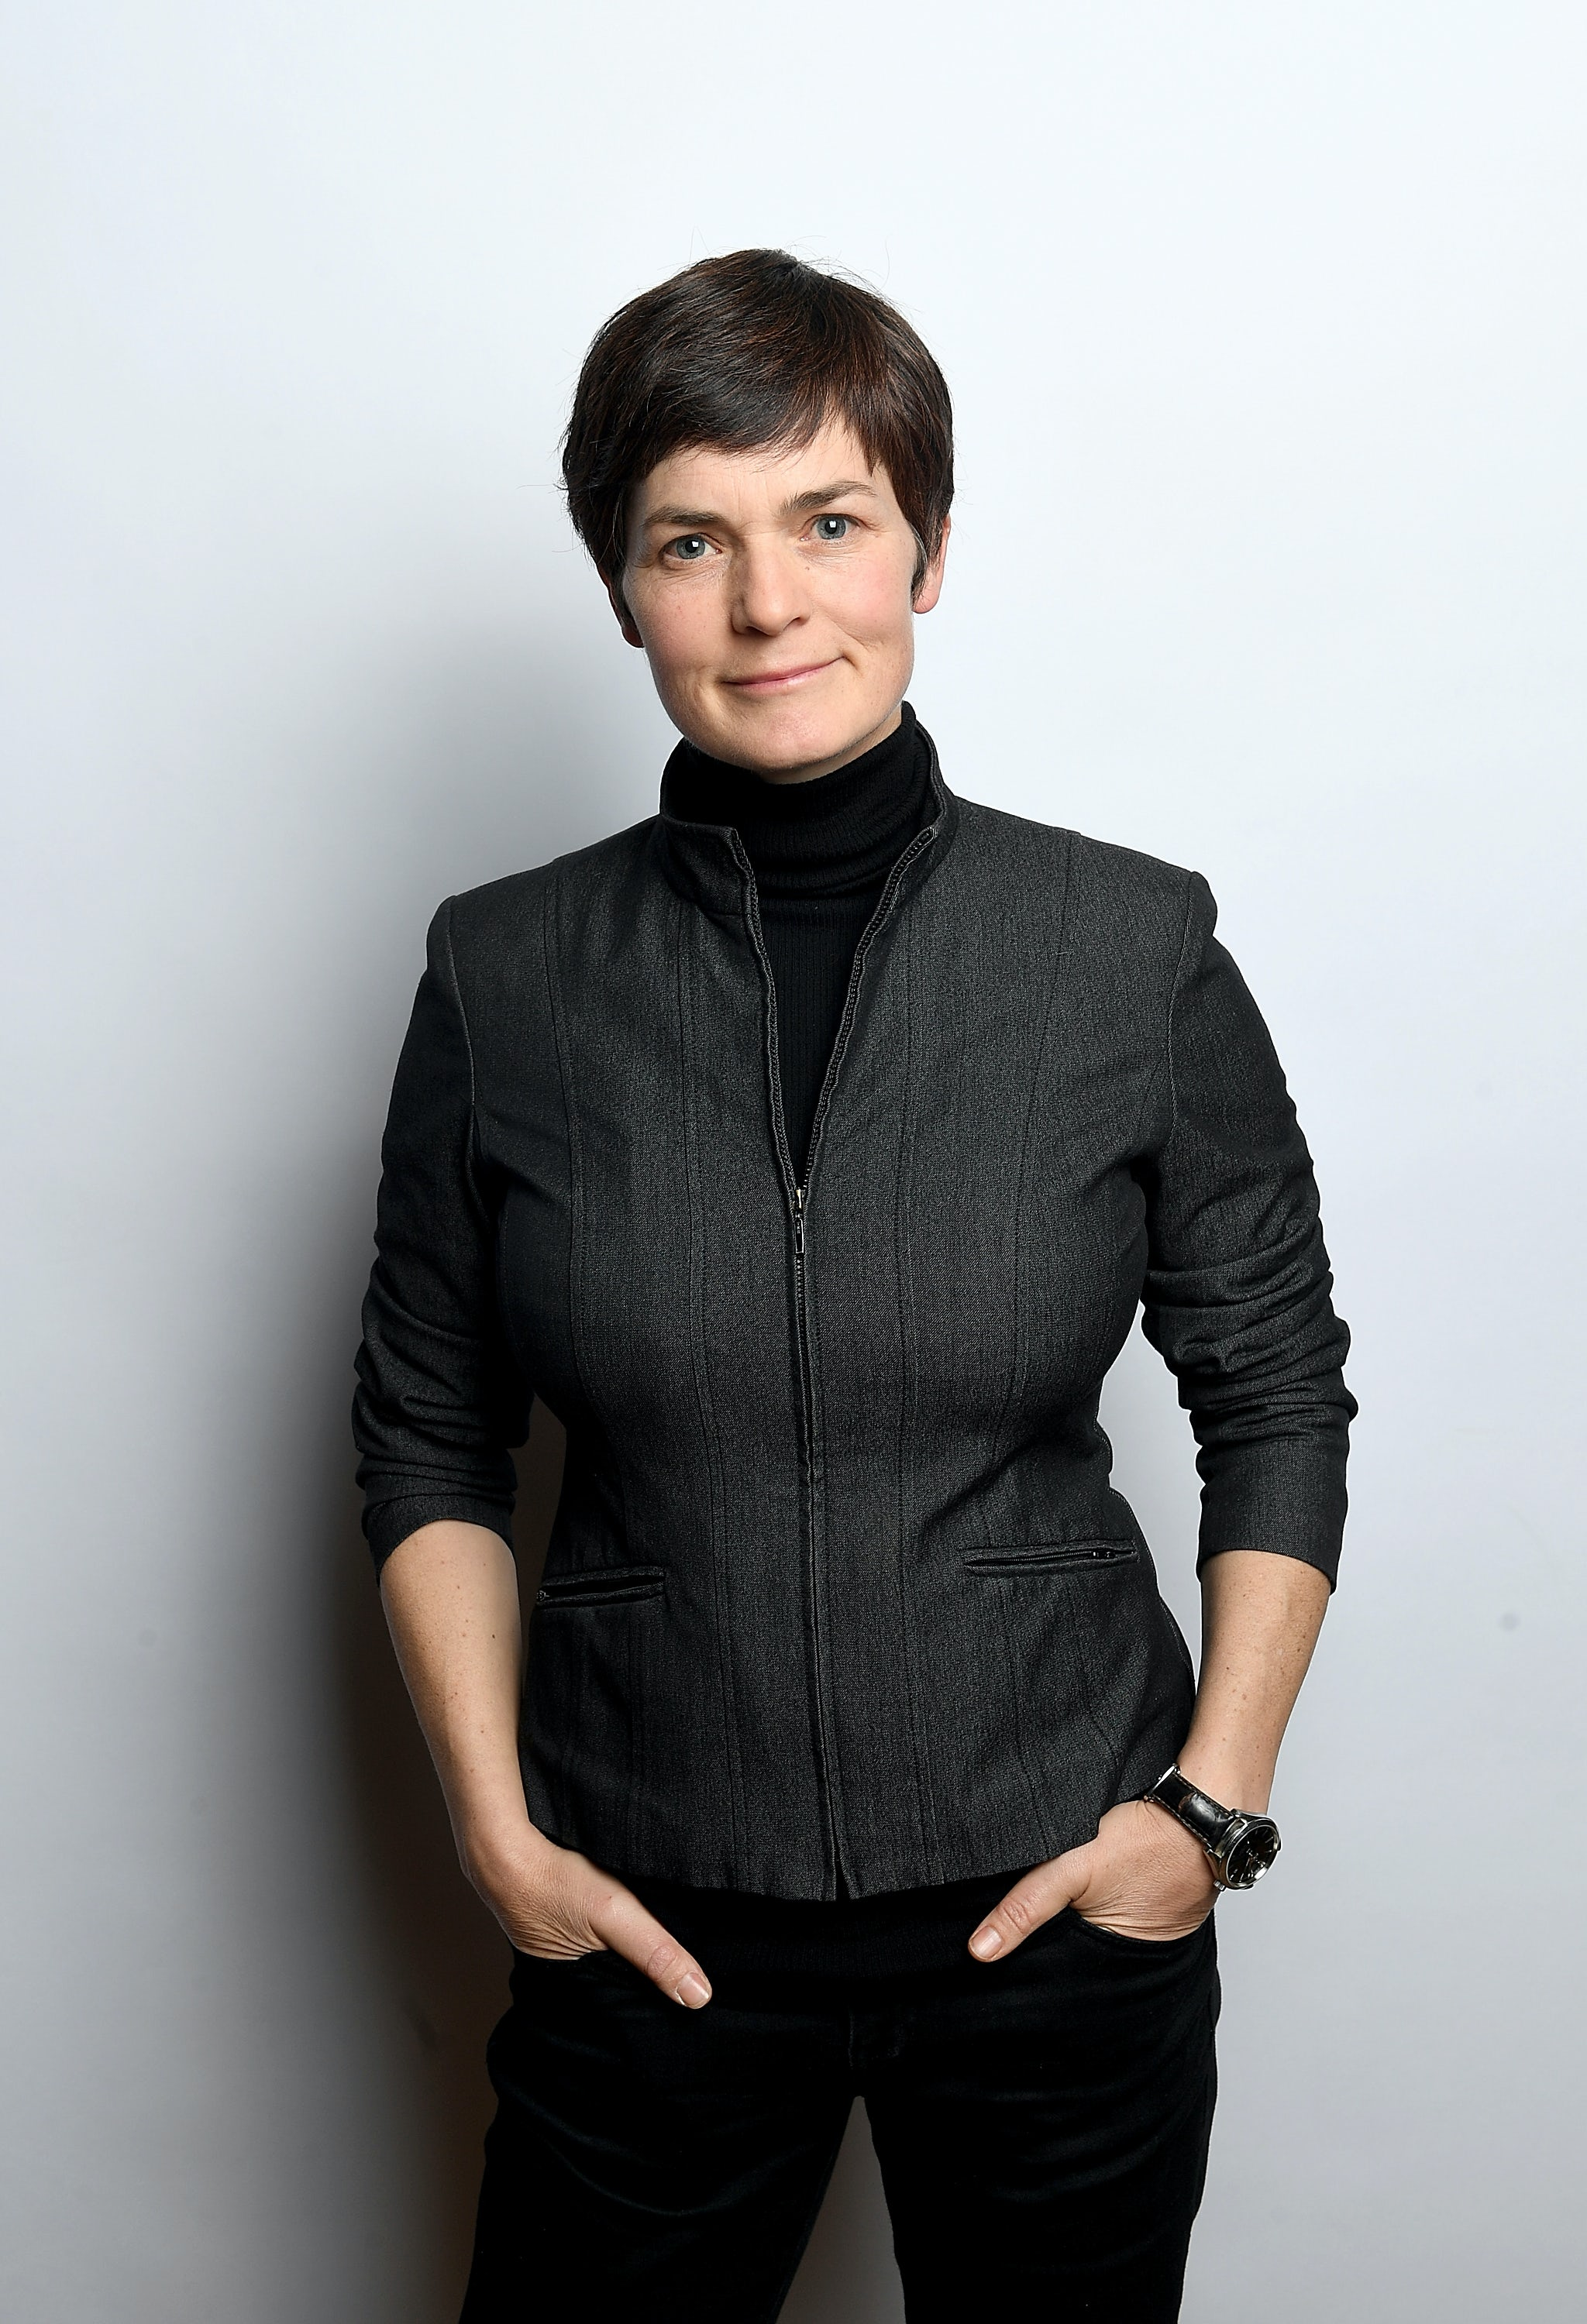 Dame Ellen MacArthur on Building Momentum for Sustainability in Fashion